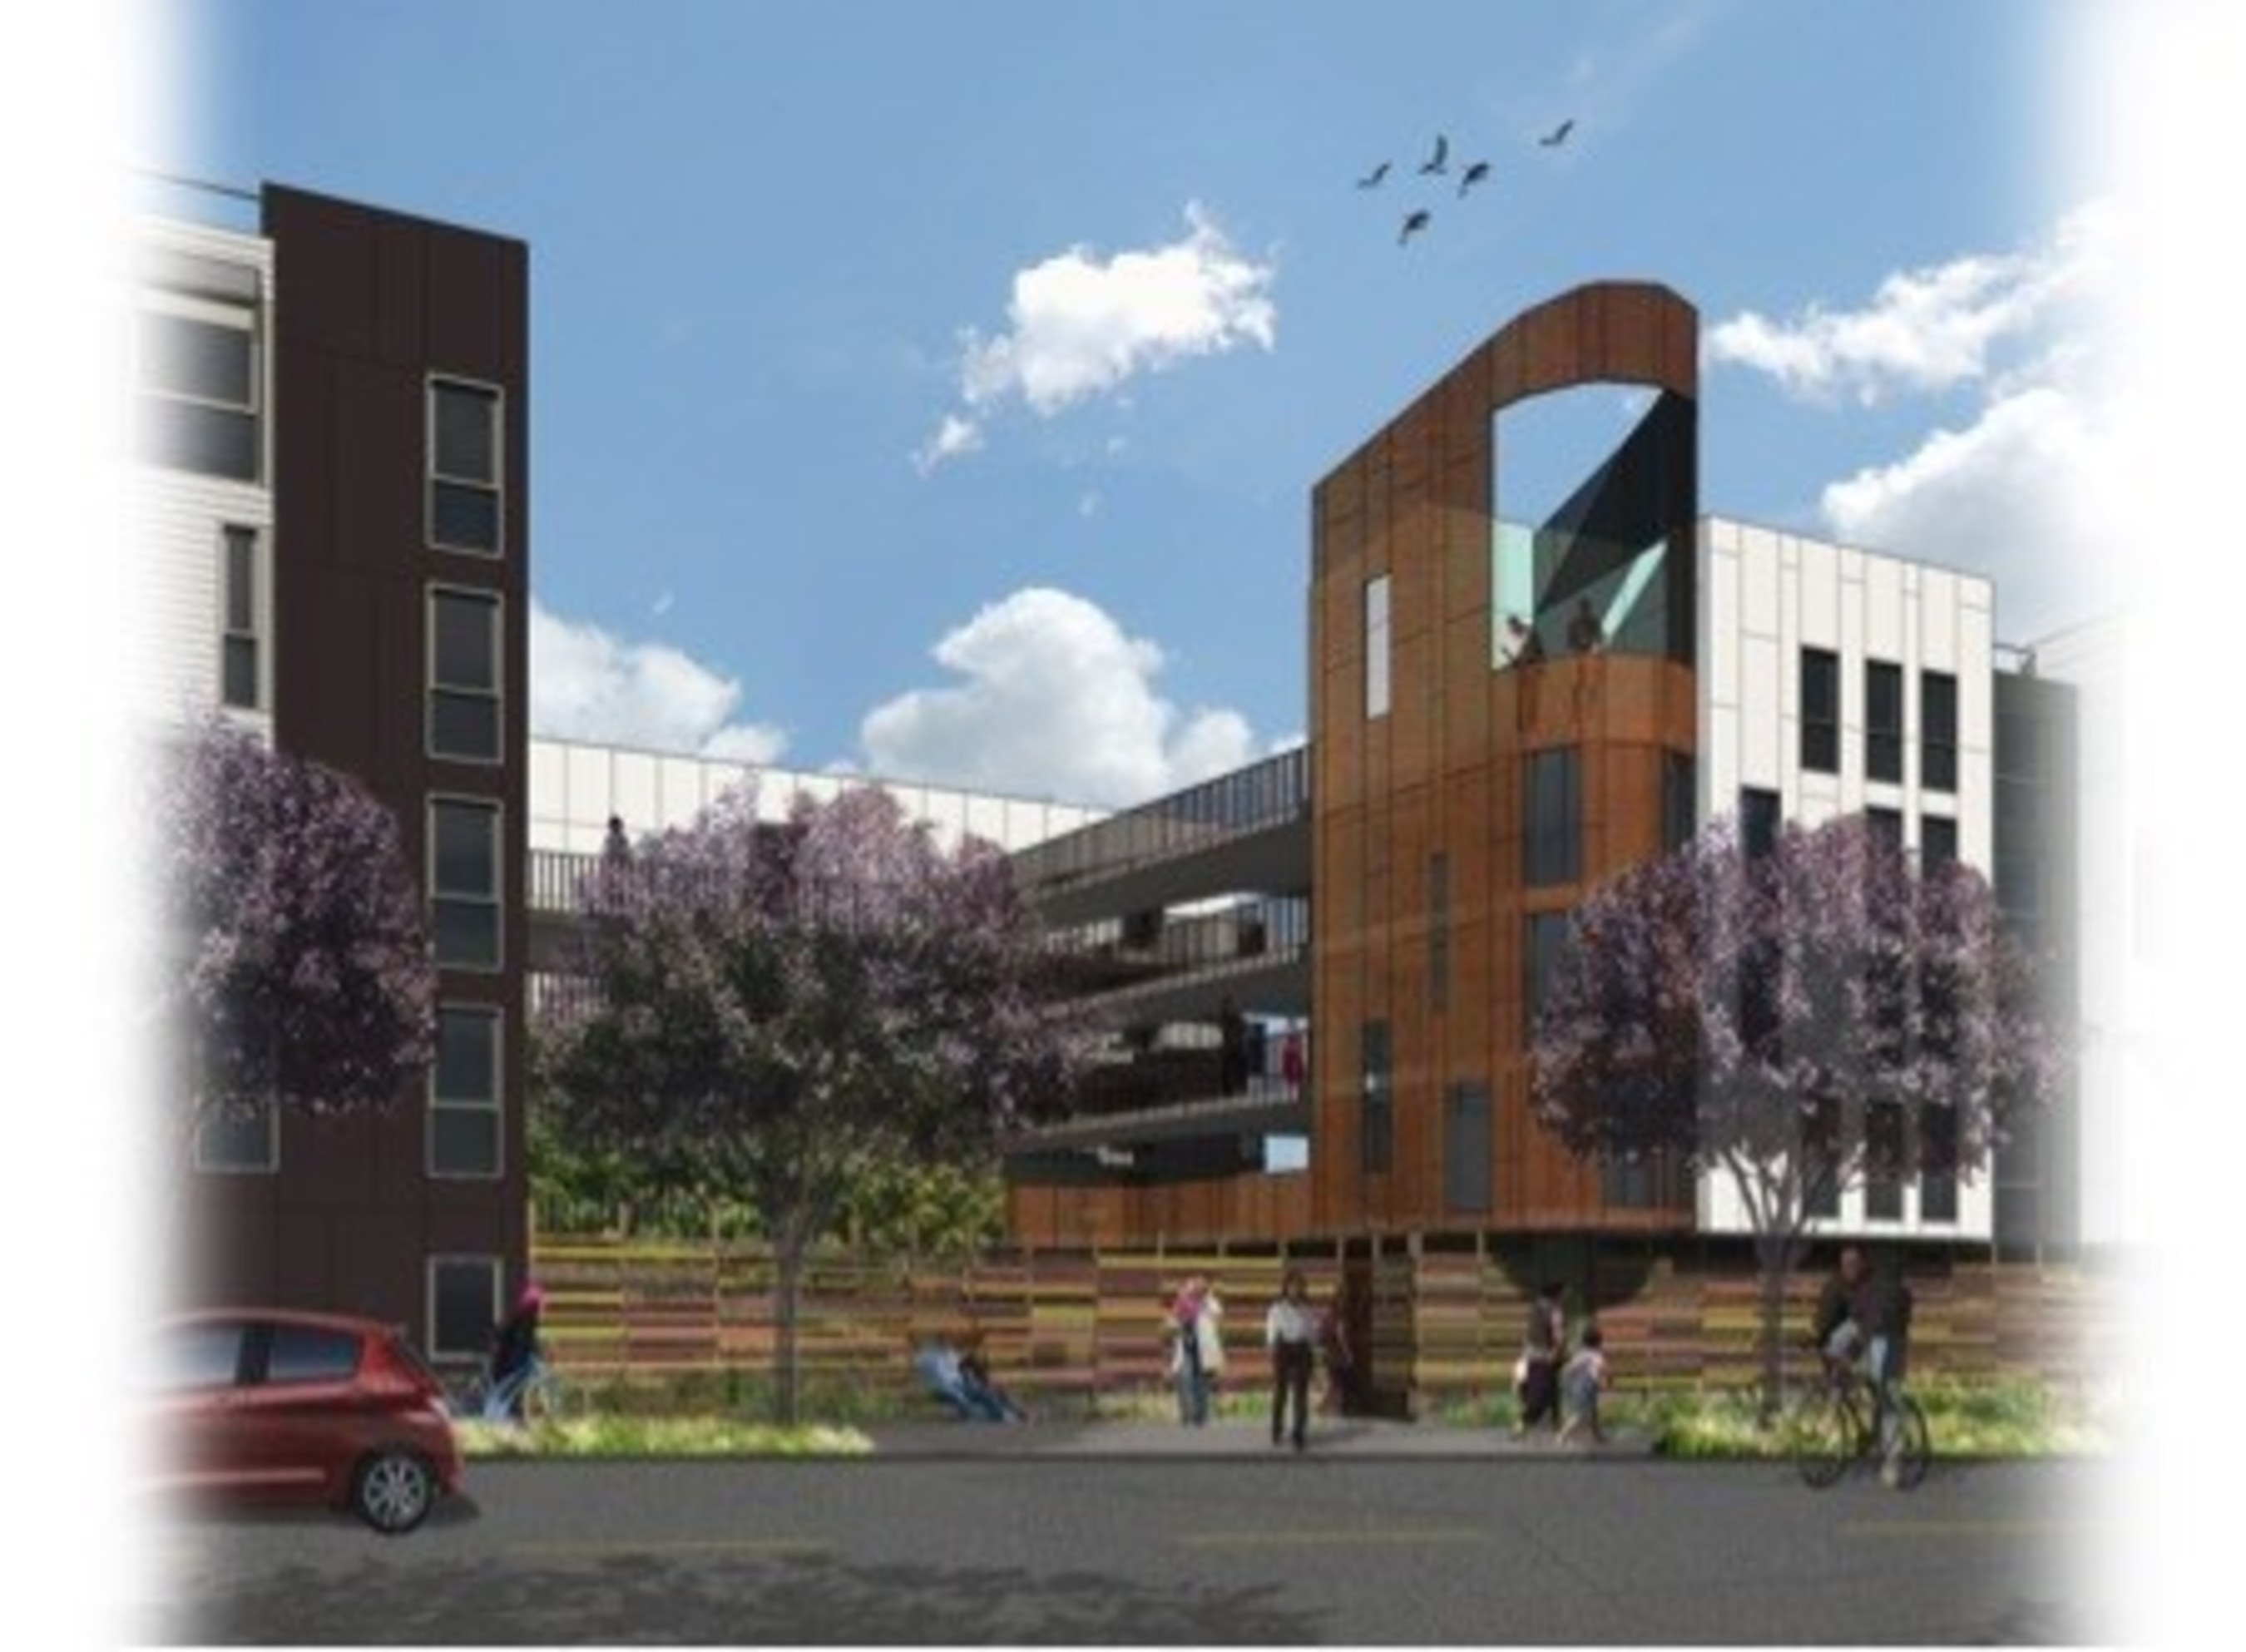 AMCAL And Young Community Developers Break Ground On Affordable Housing At The San Francisco Shipyard